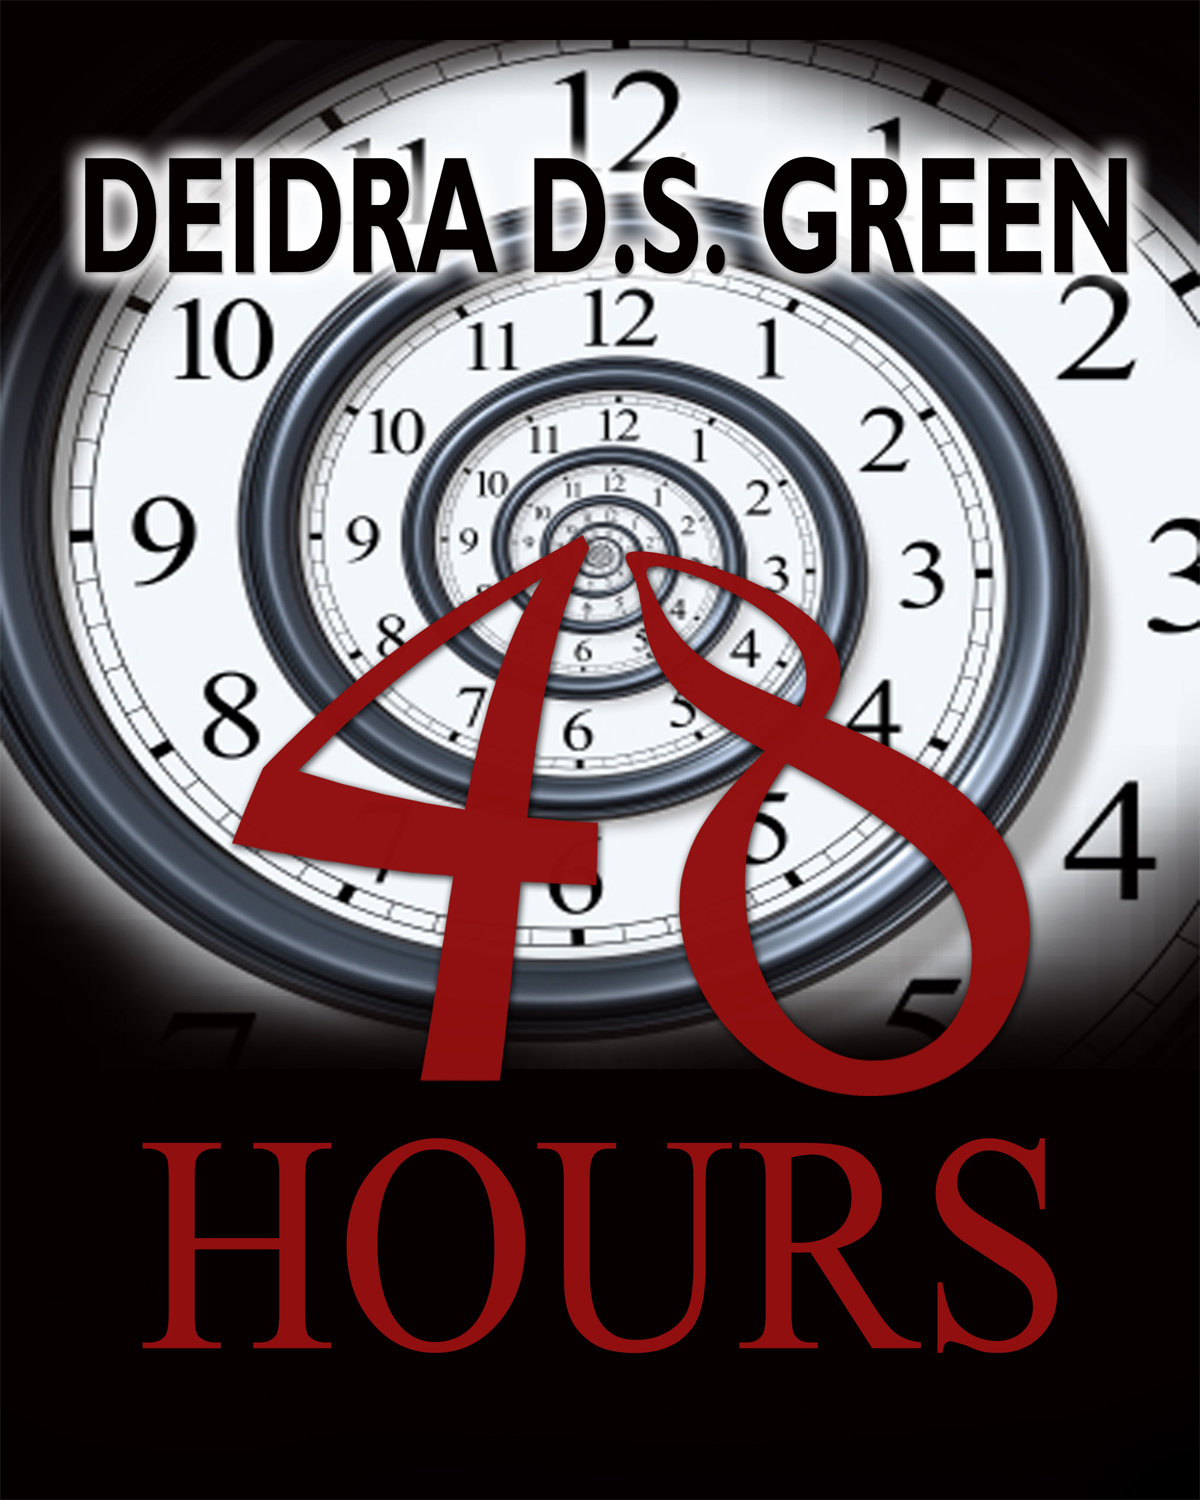 48 Hours By: Deidra D. S. Green